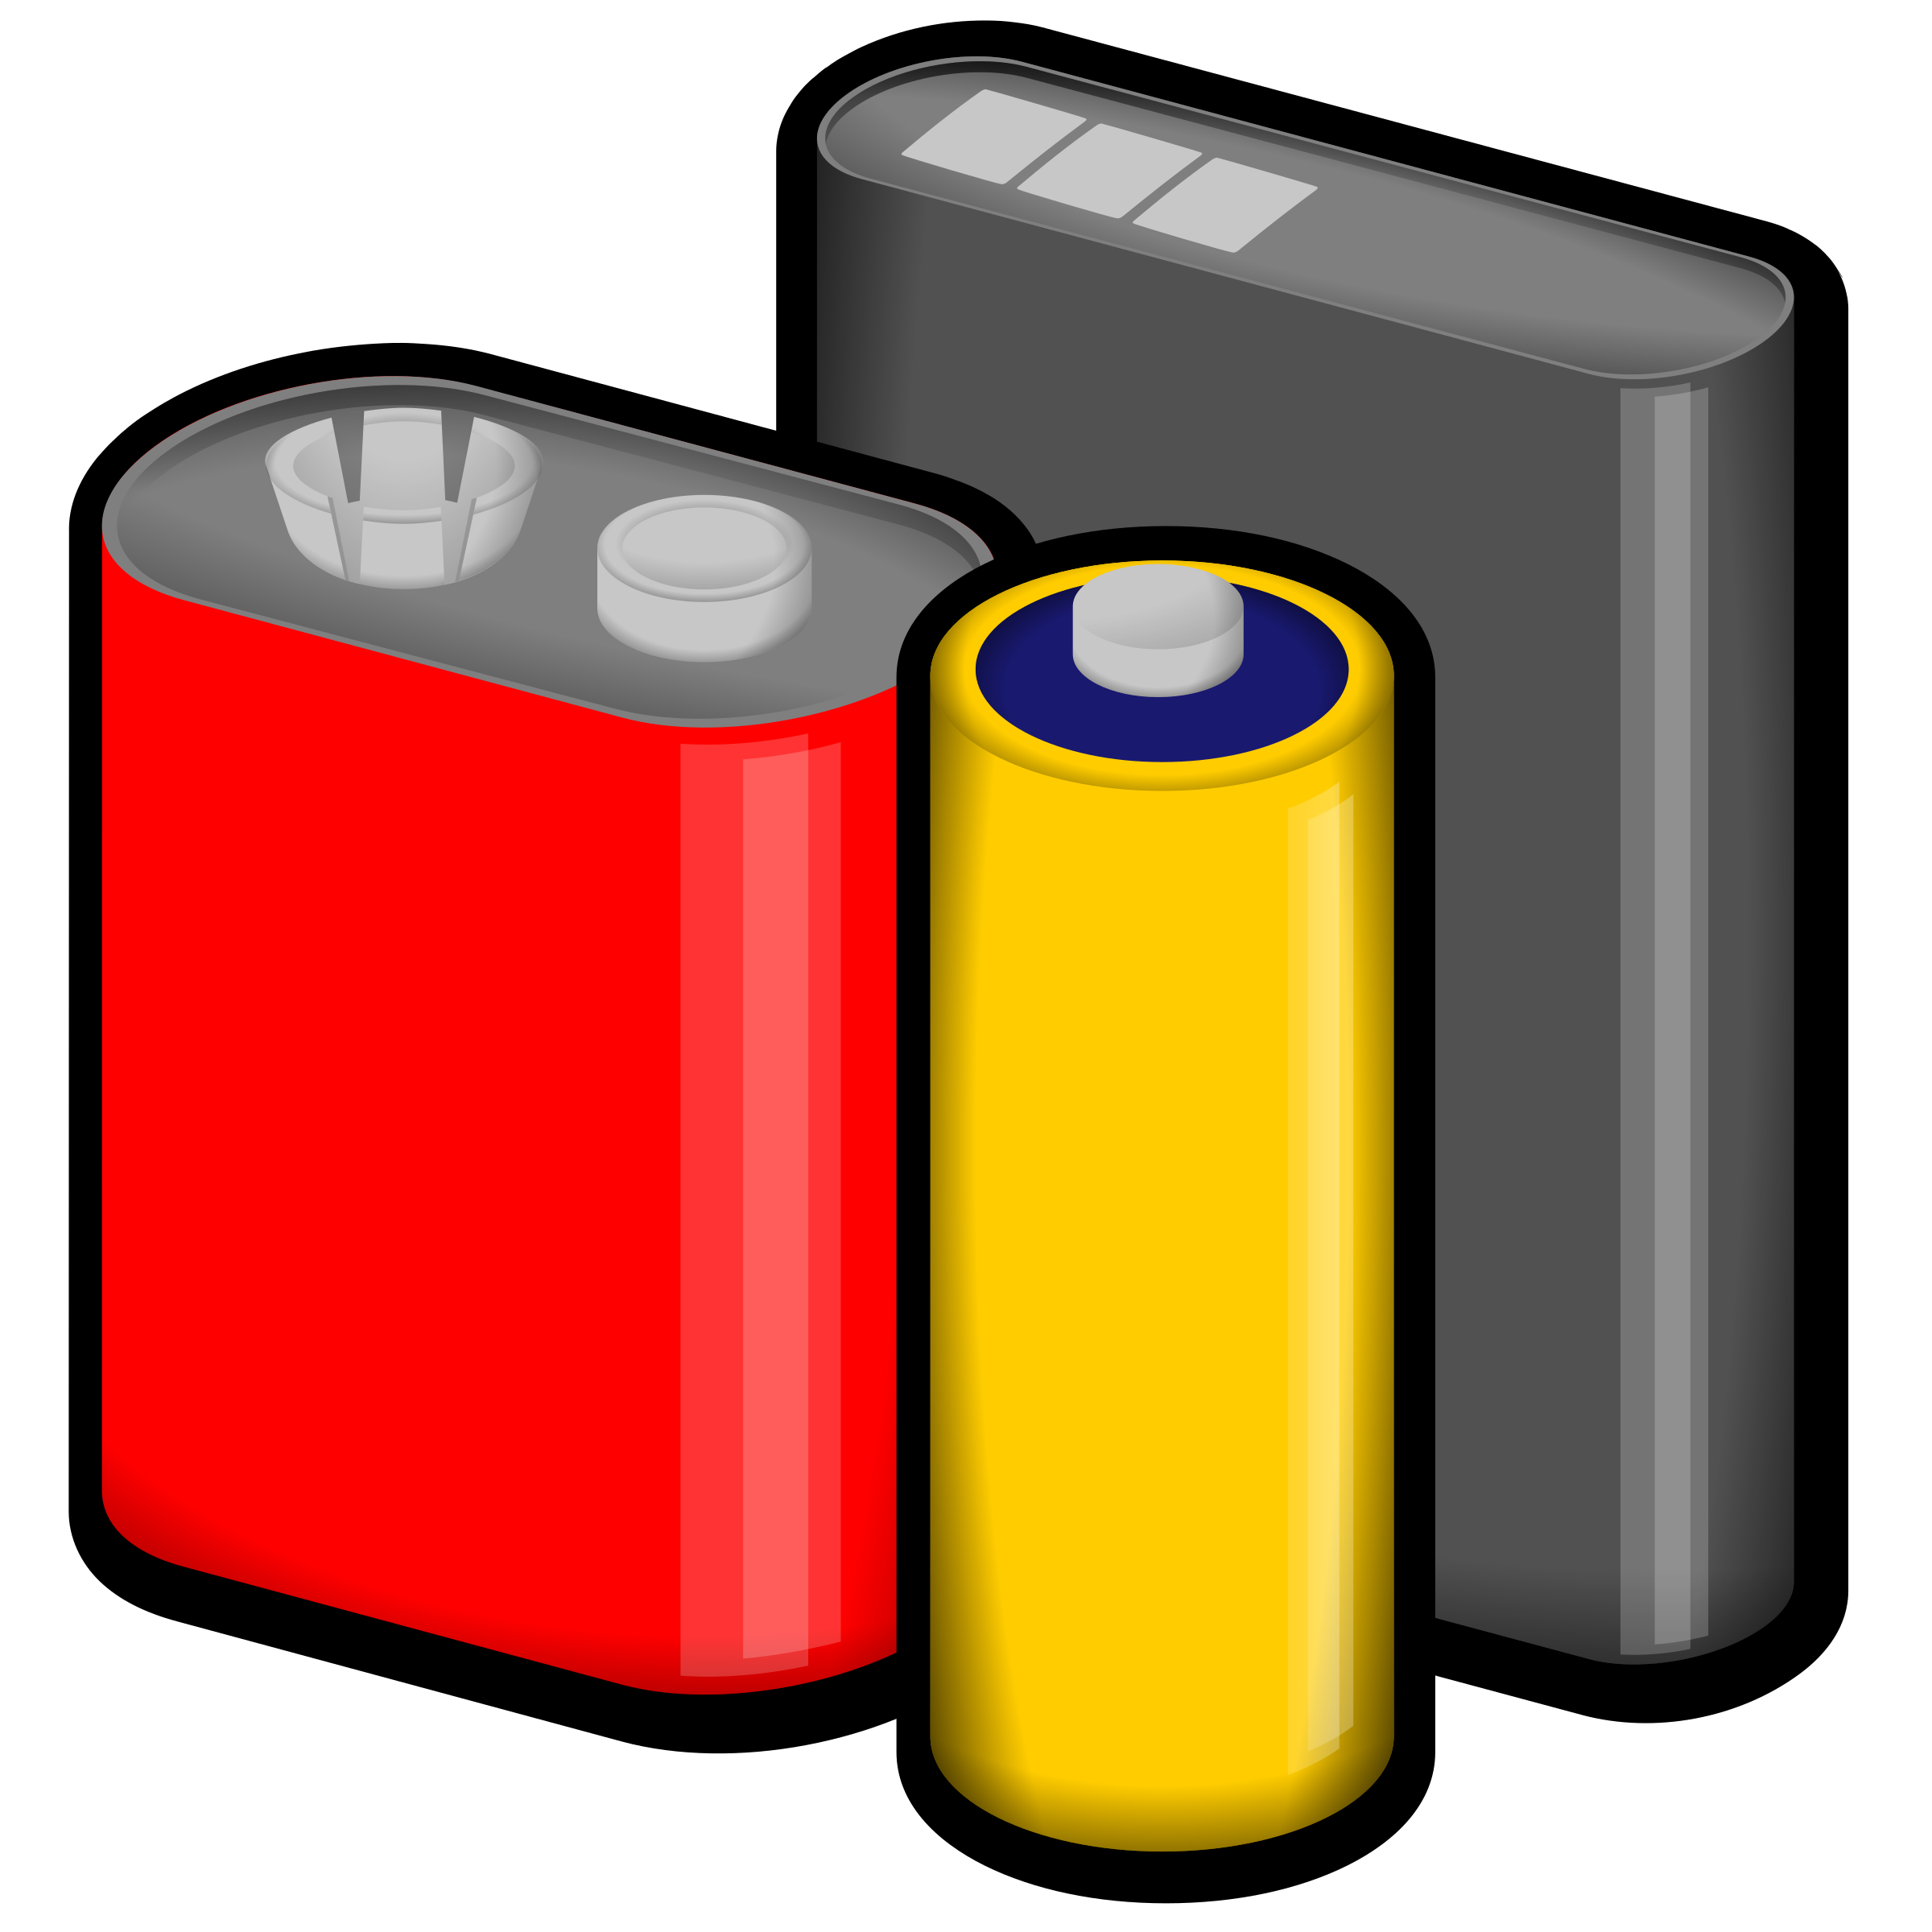 batteries by jonata